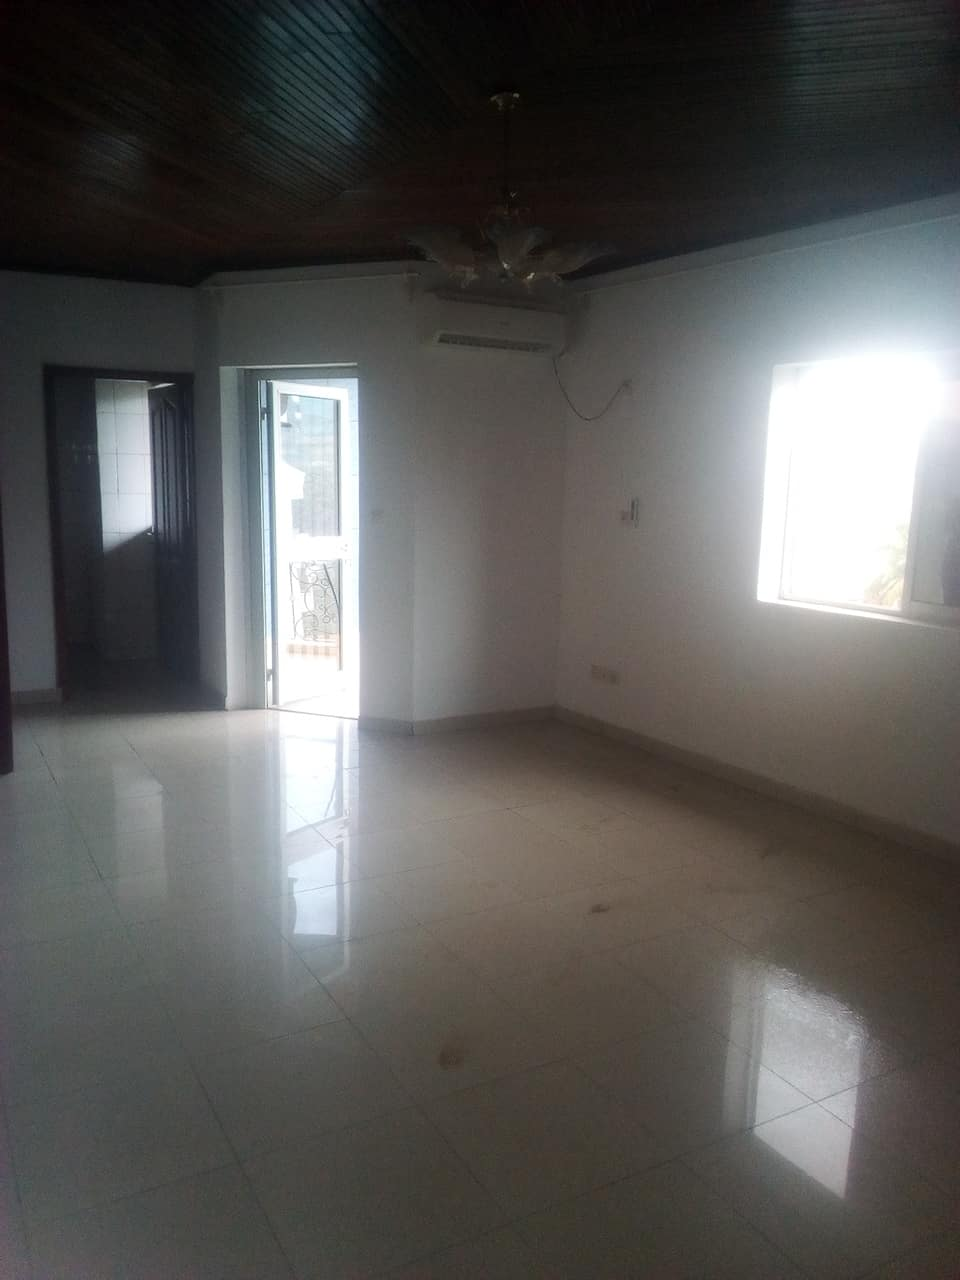 Apartment to rent - Yaoundé, Bastos, Pas loin du bliss - 1 living room(s), 1 bedroom(s), 1 bathroom(s) - 250 000 FCFA / month